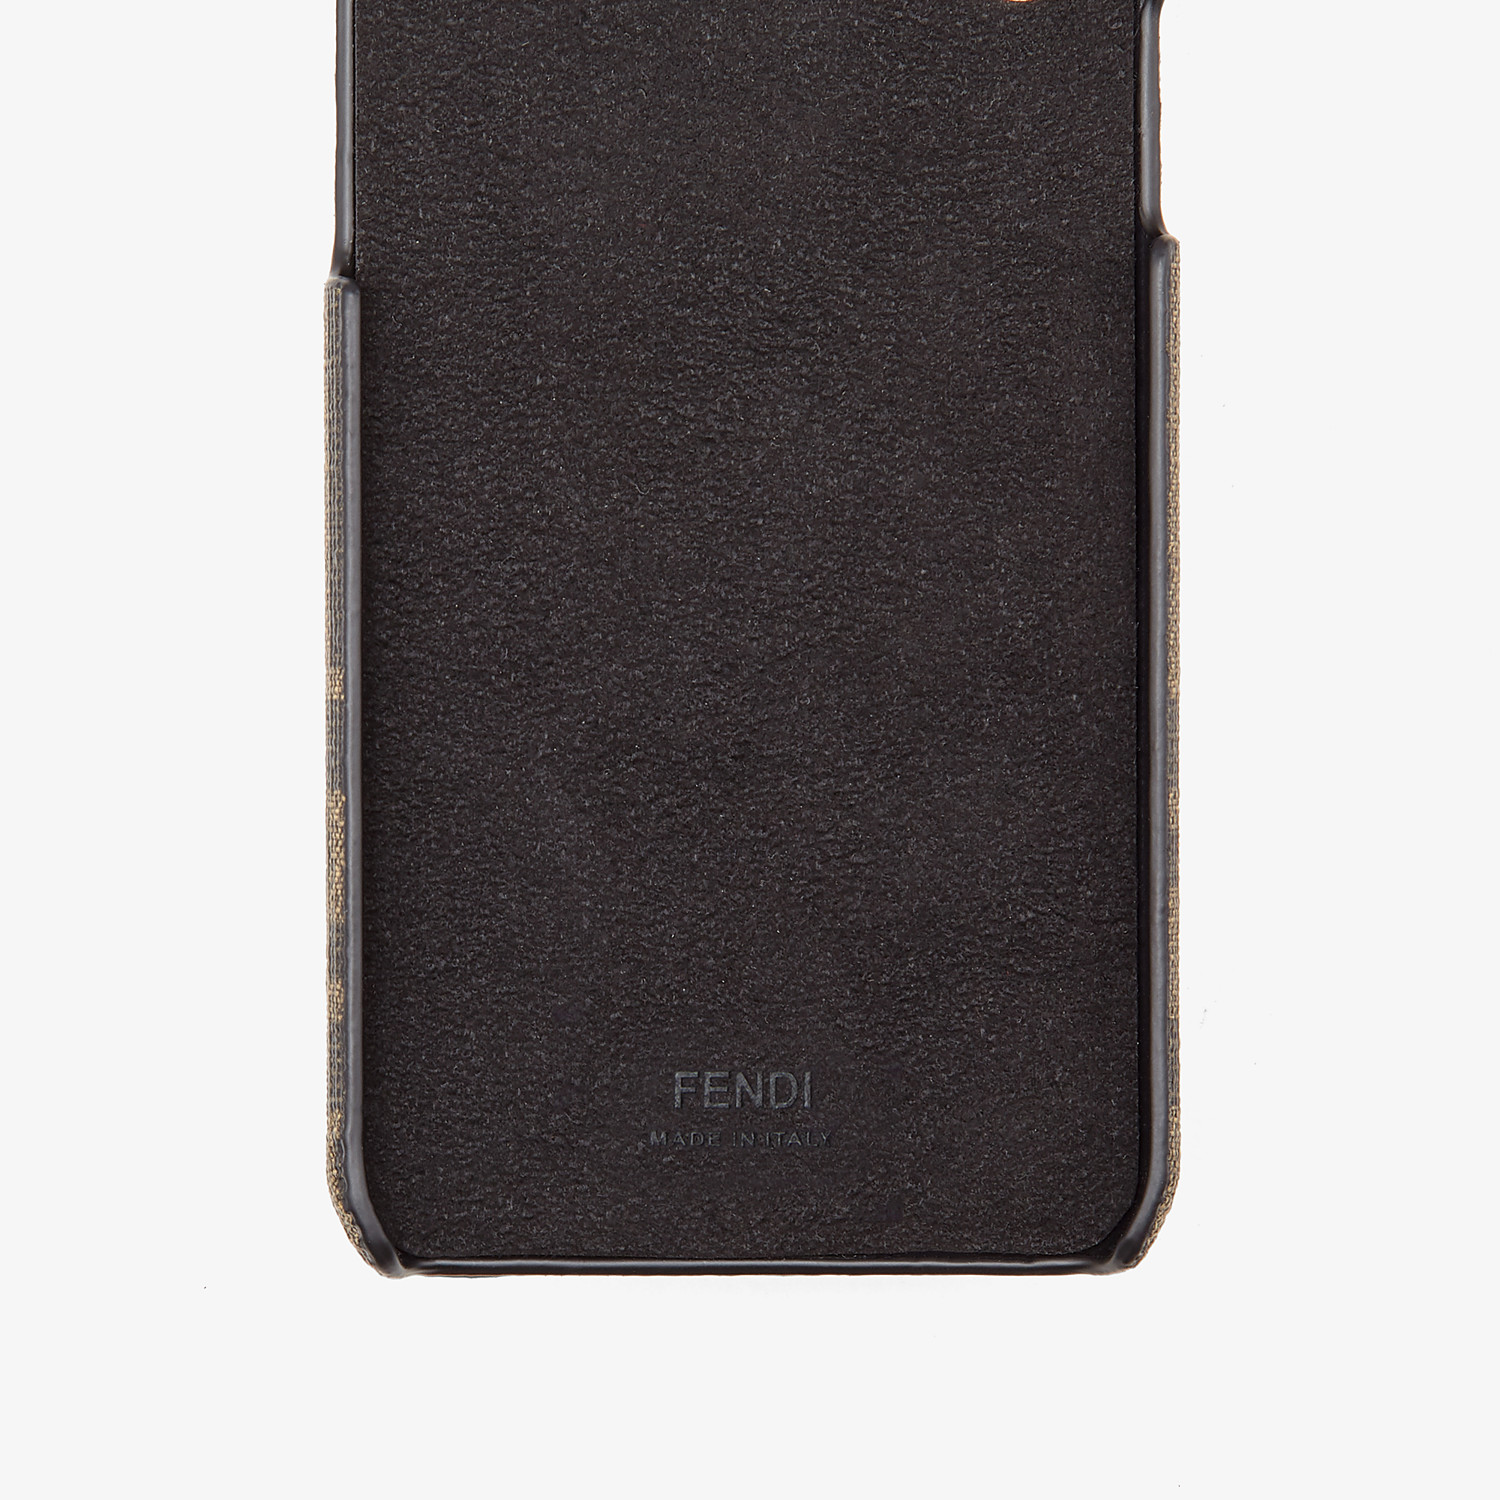 FENDI iPHONE X CASE - Brown cover - view 2 detail